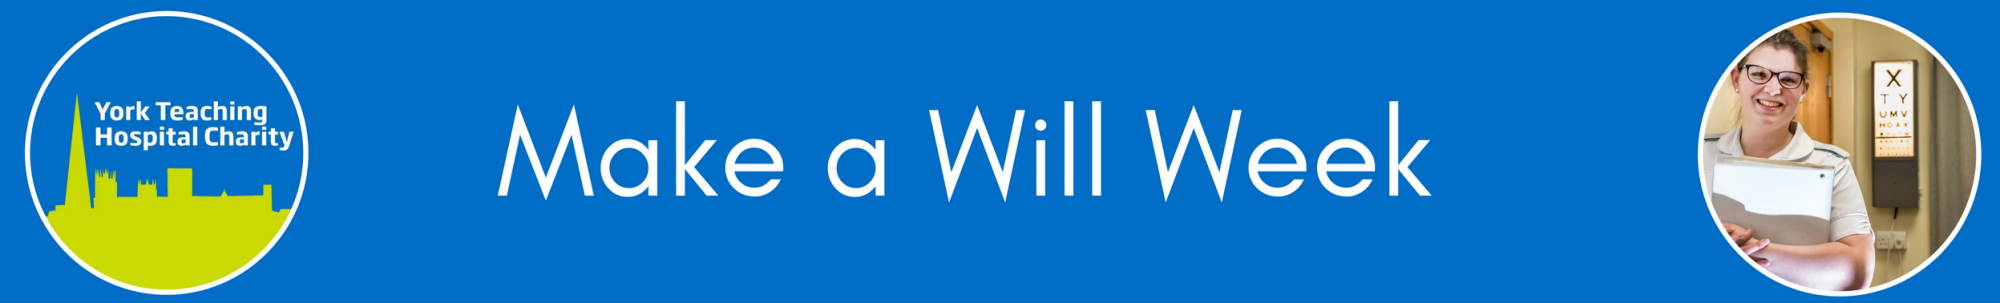 Make a Will week header